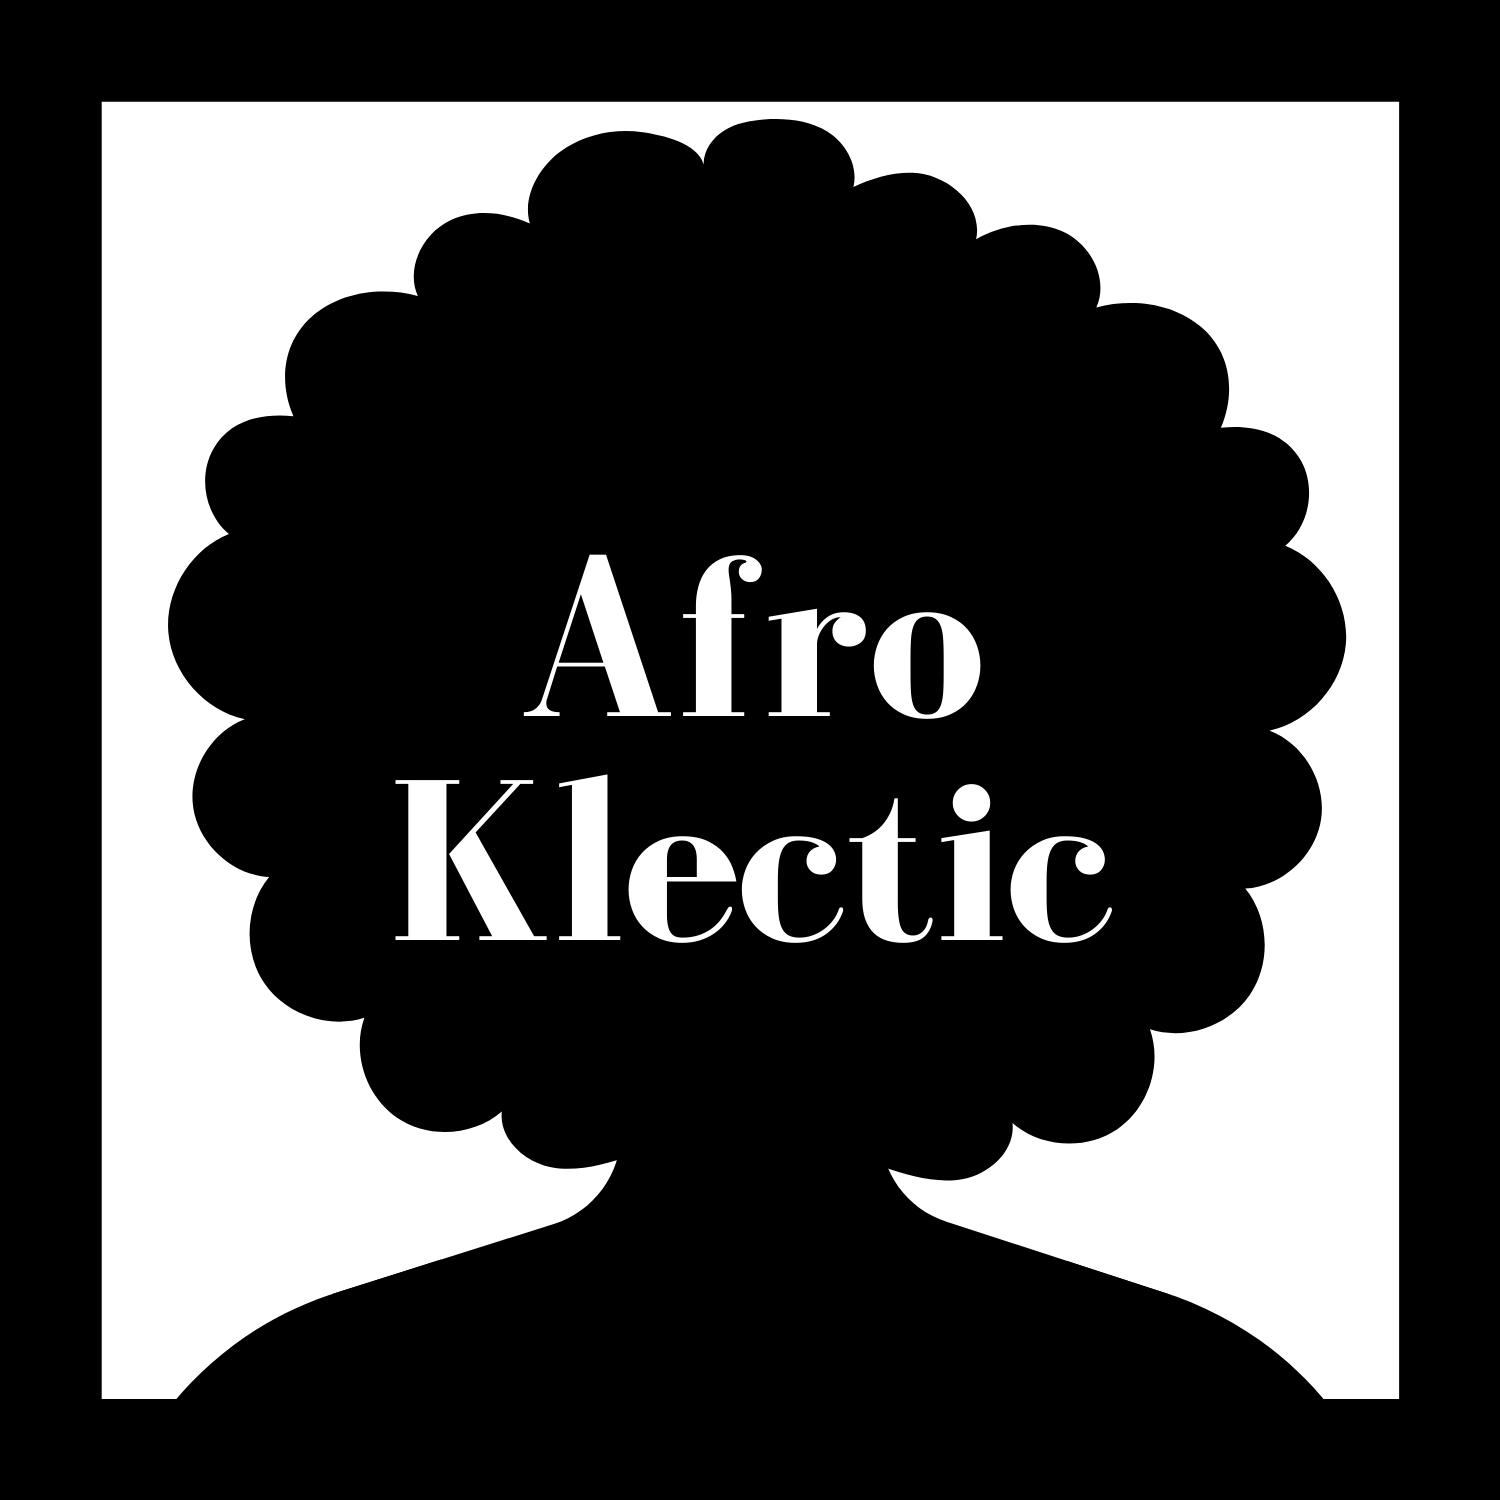 Afro Klectic